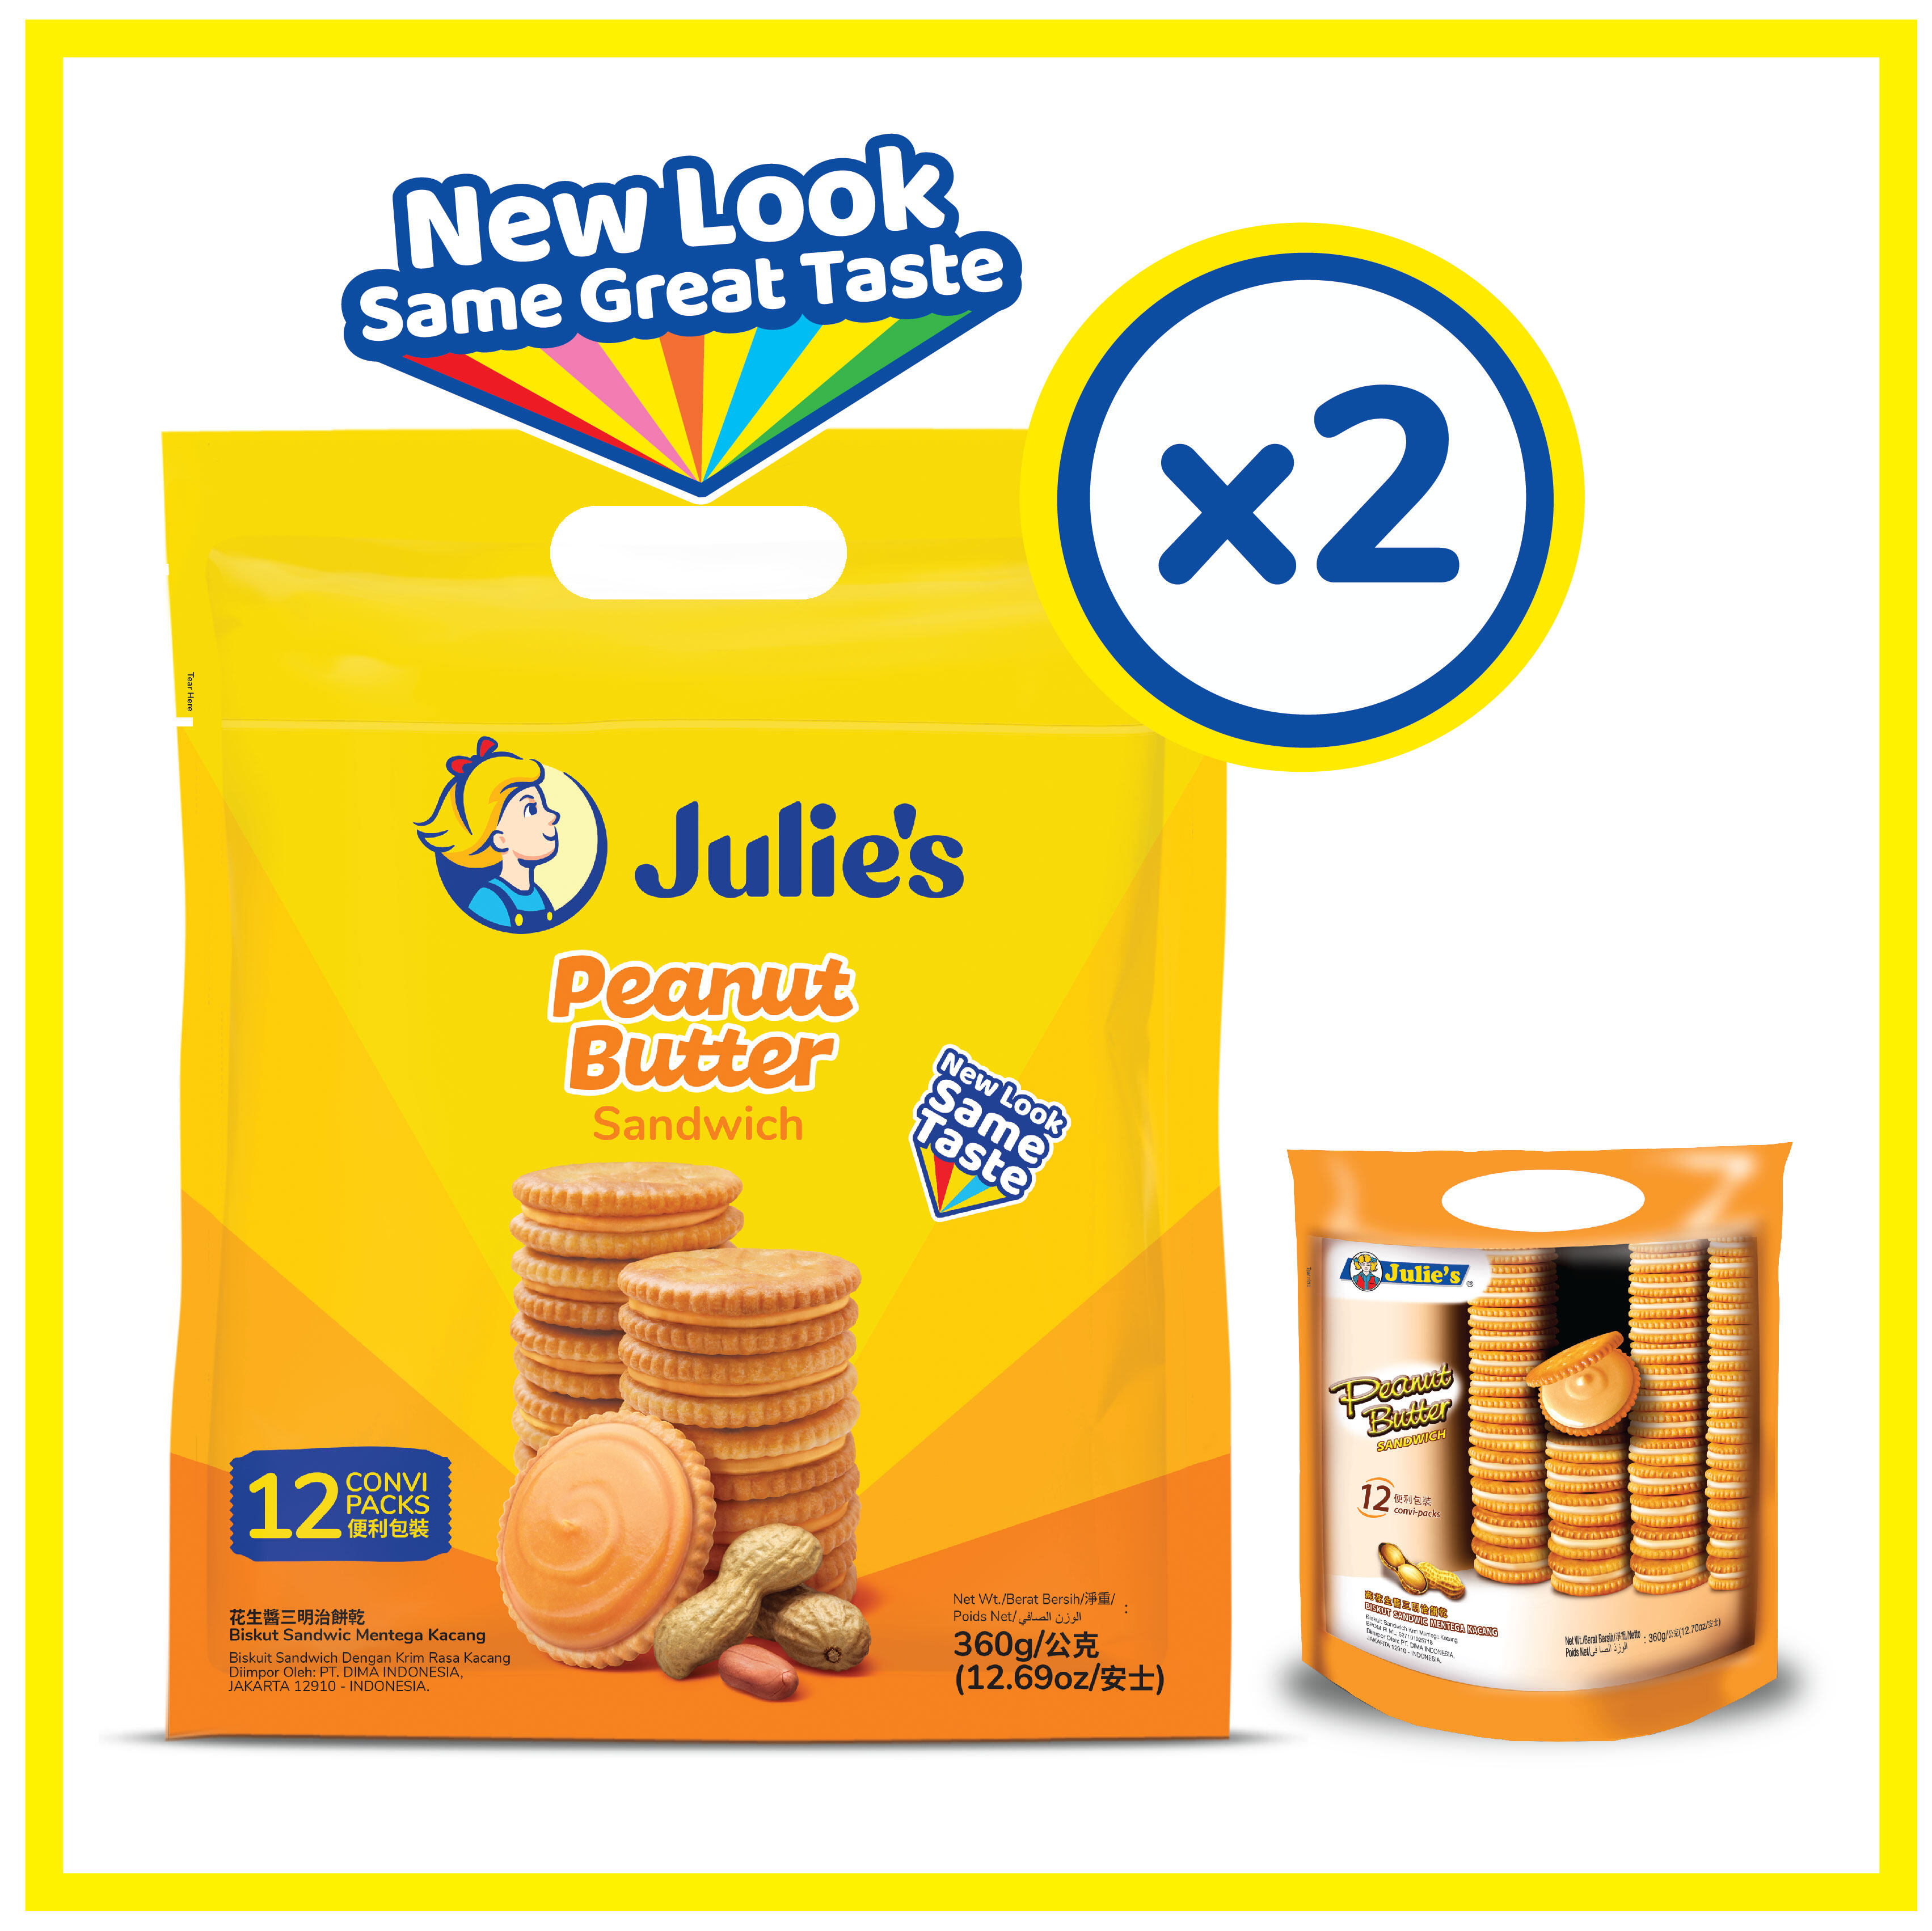 Julie's Peanut Butter Sandwich 360g x 2 pack